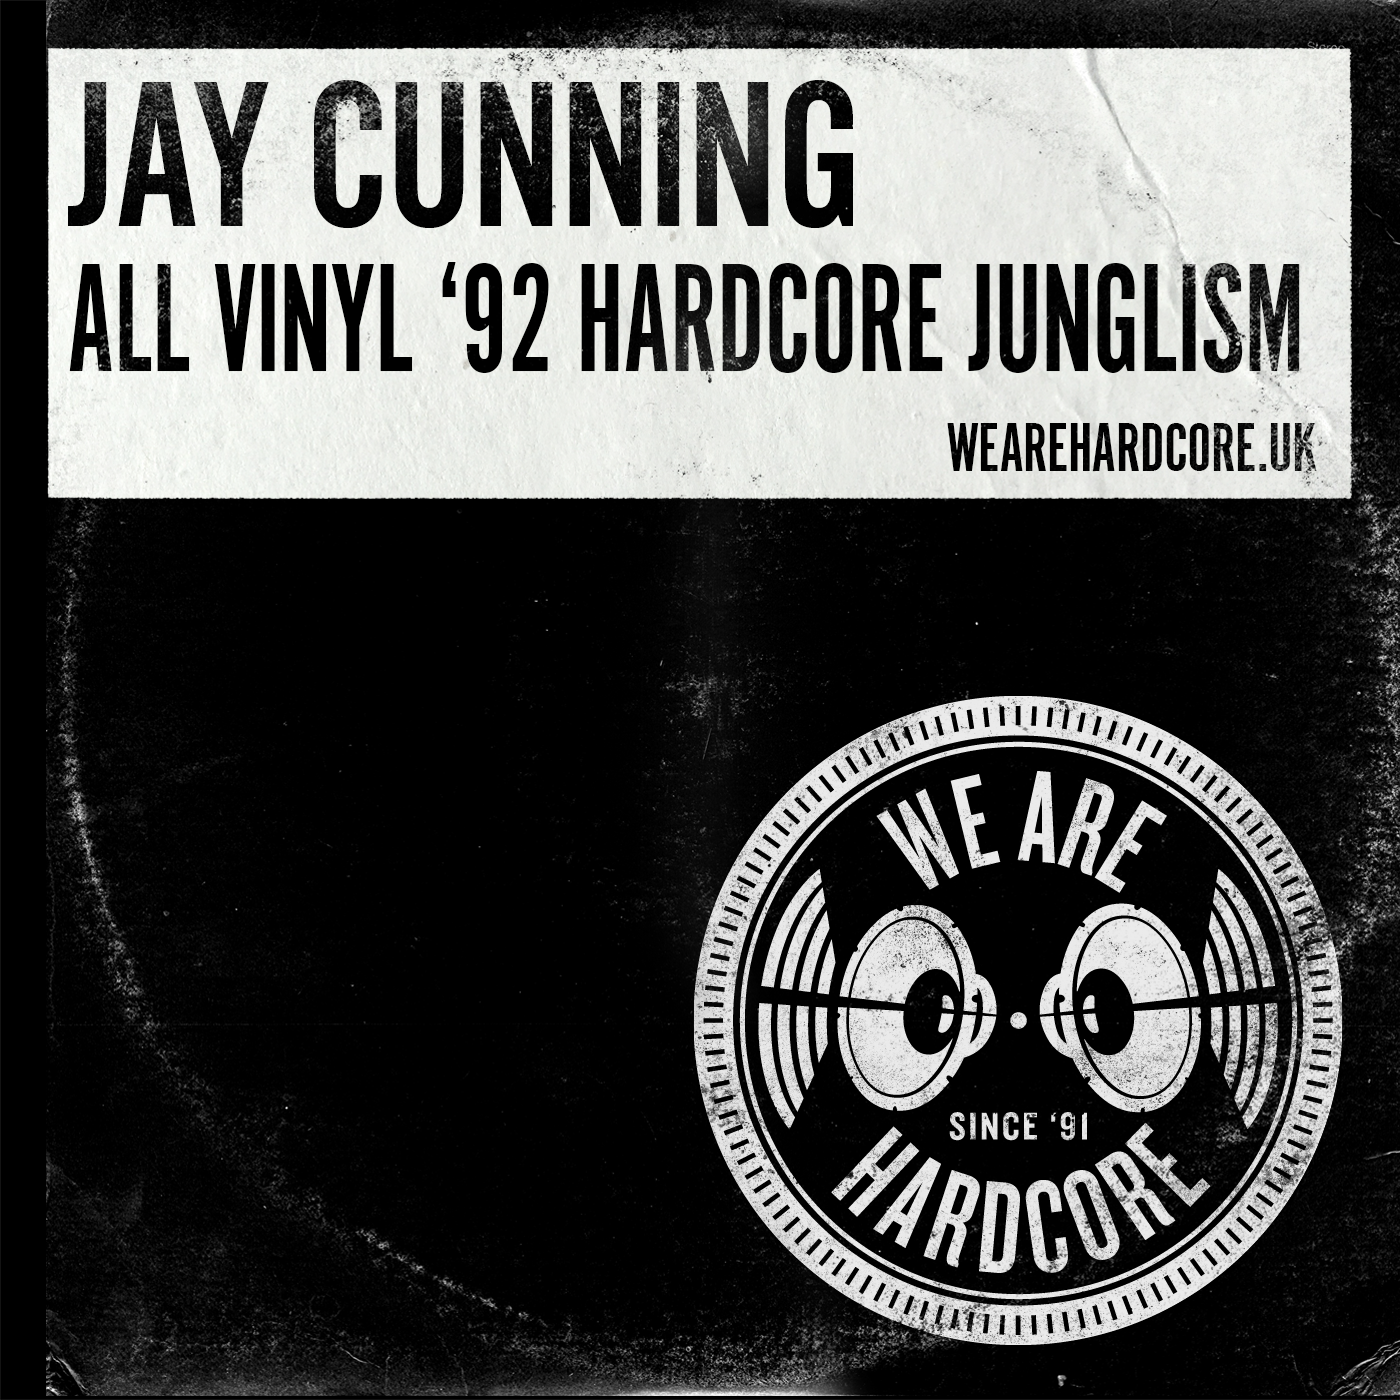 All Vinyl '92 Hardcore Junglism - Jay Cunning WE ARE HARDCORE